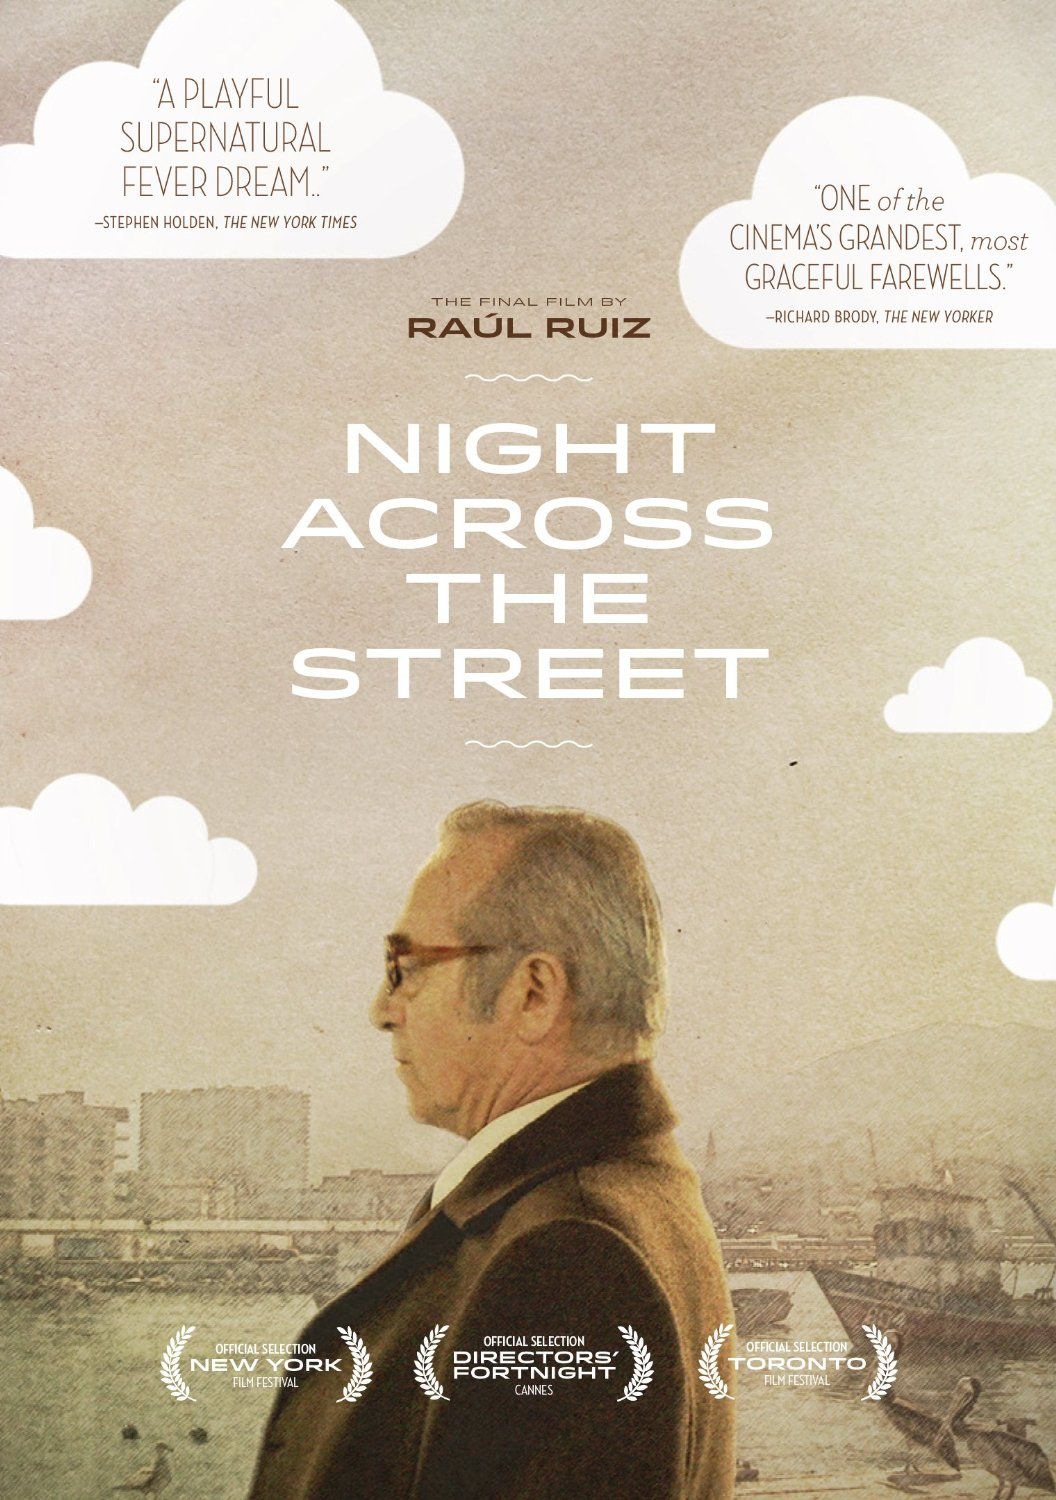 Publicity still for Night Across the Street